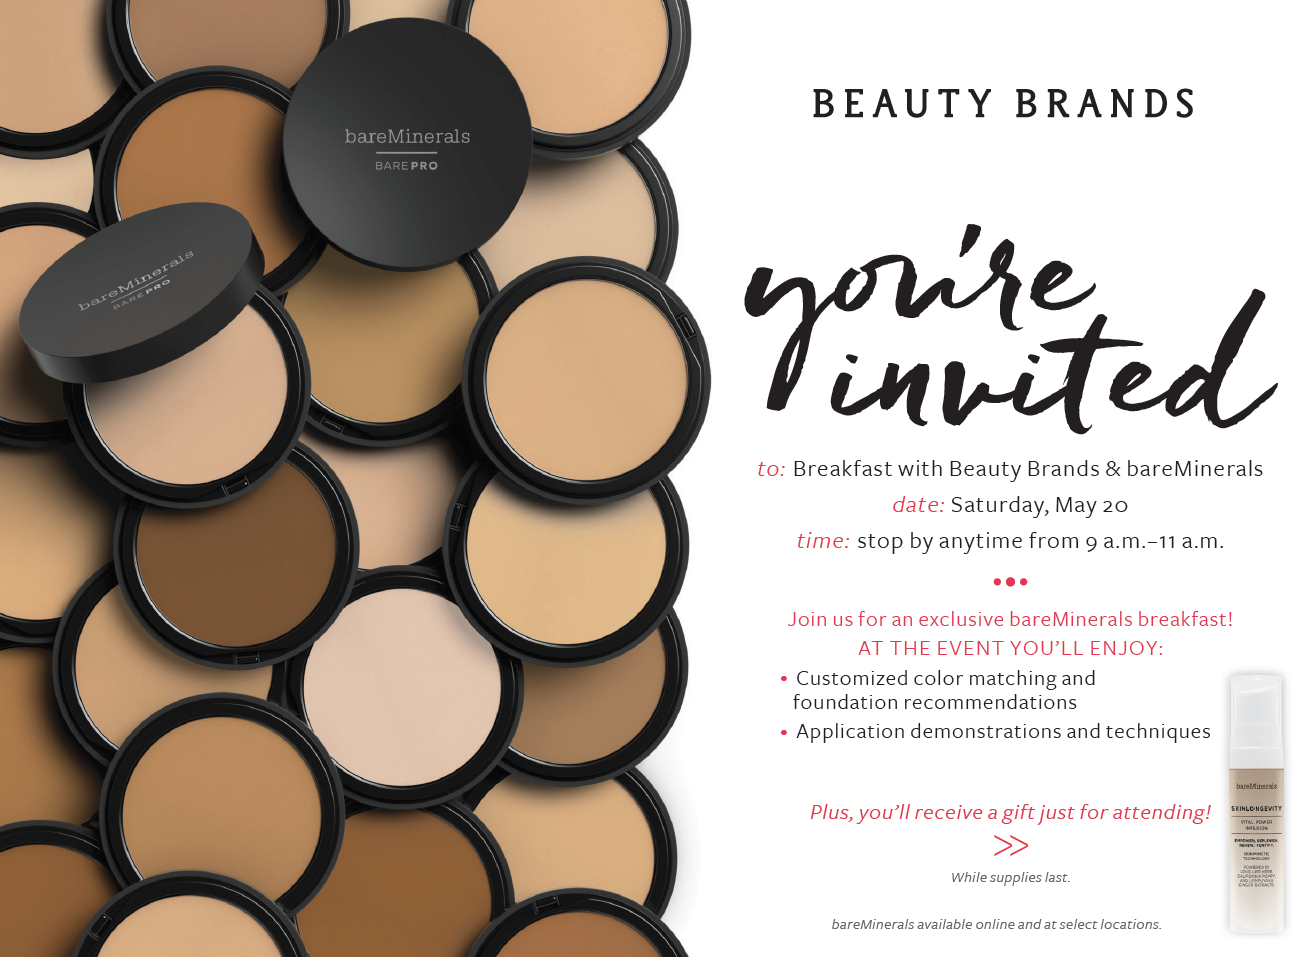 Beauty Brands + Bare Minerals - Melanie Knopke